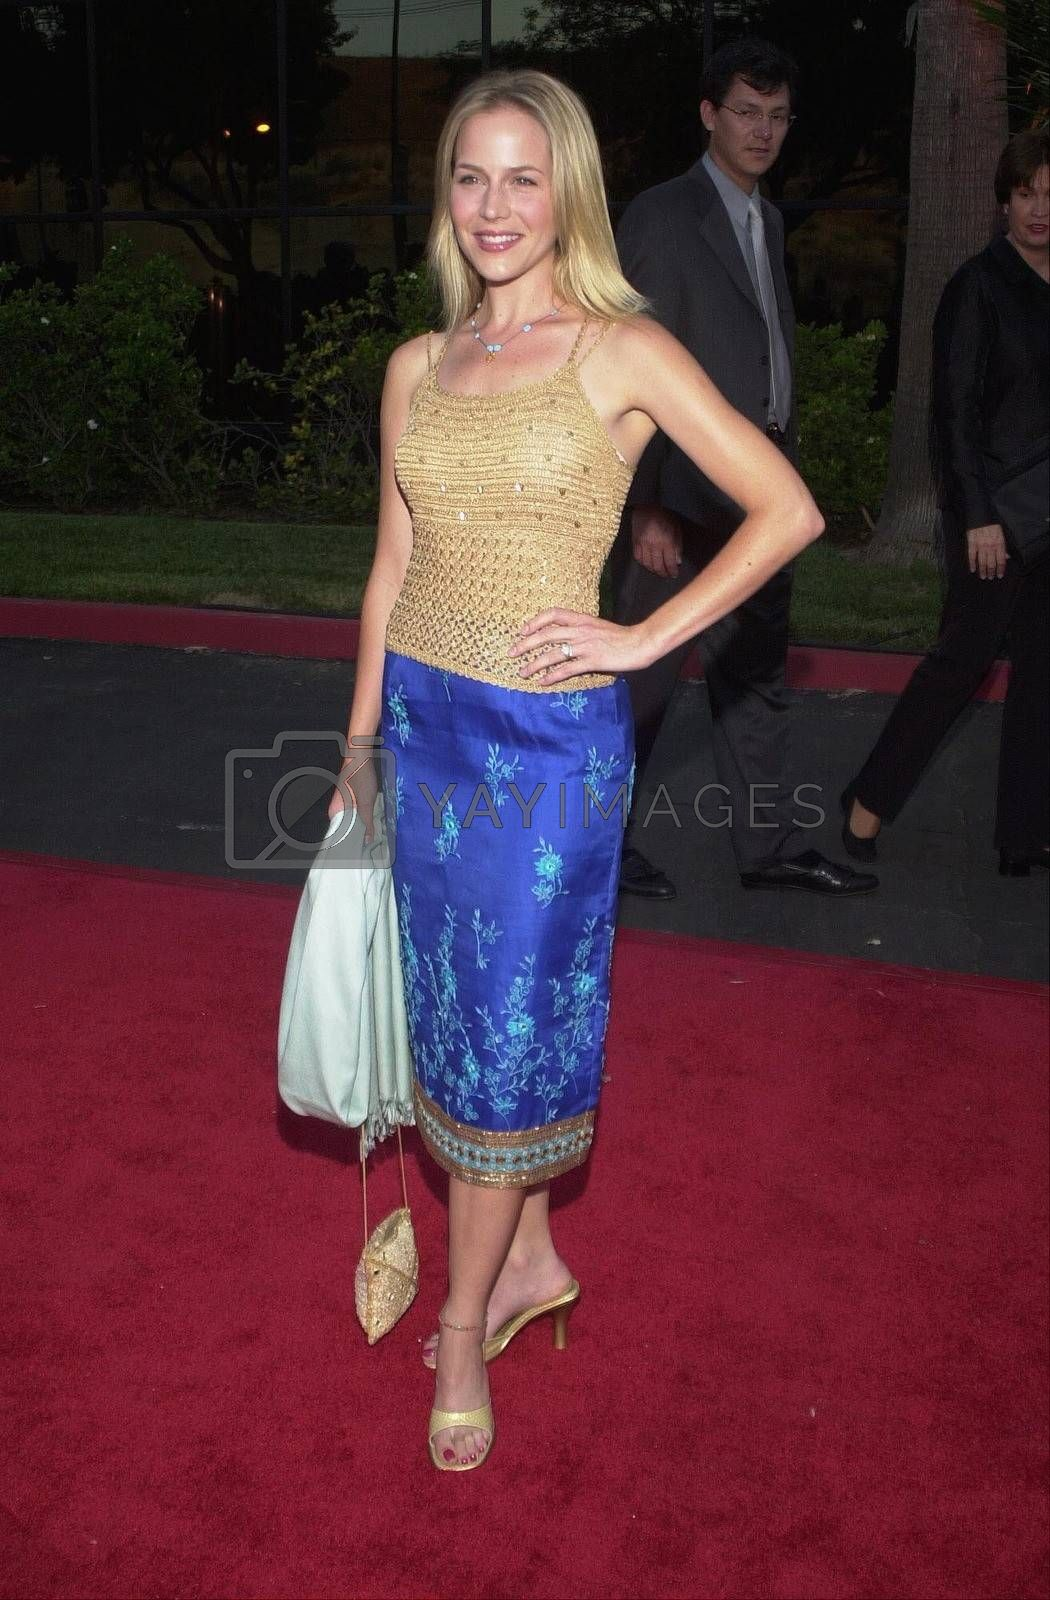 Julie Benz at the Planet Hope Gala hosted by Sharon and Kelly Stone in Woodland Hills. 08-07-00